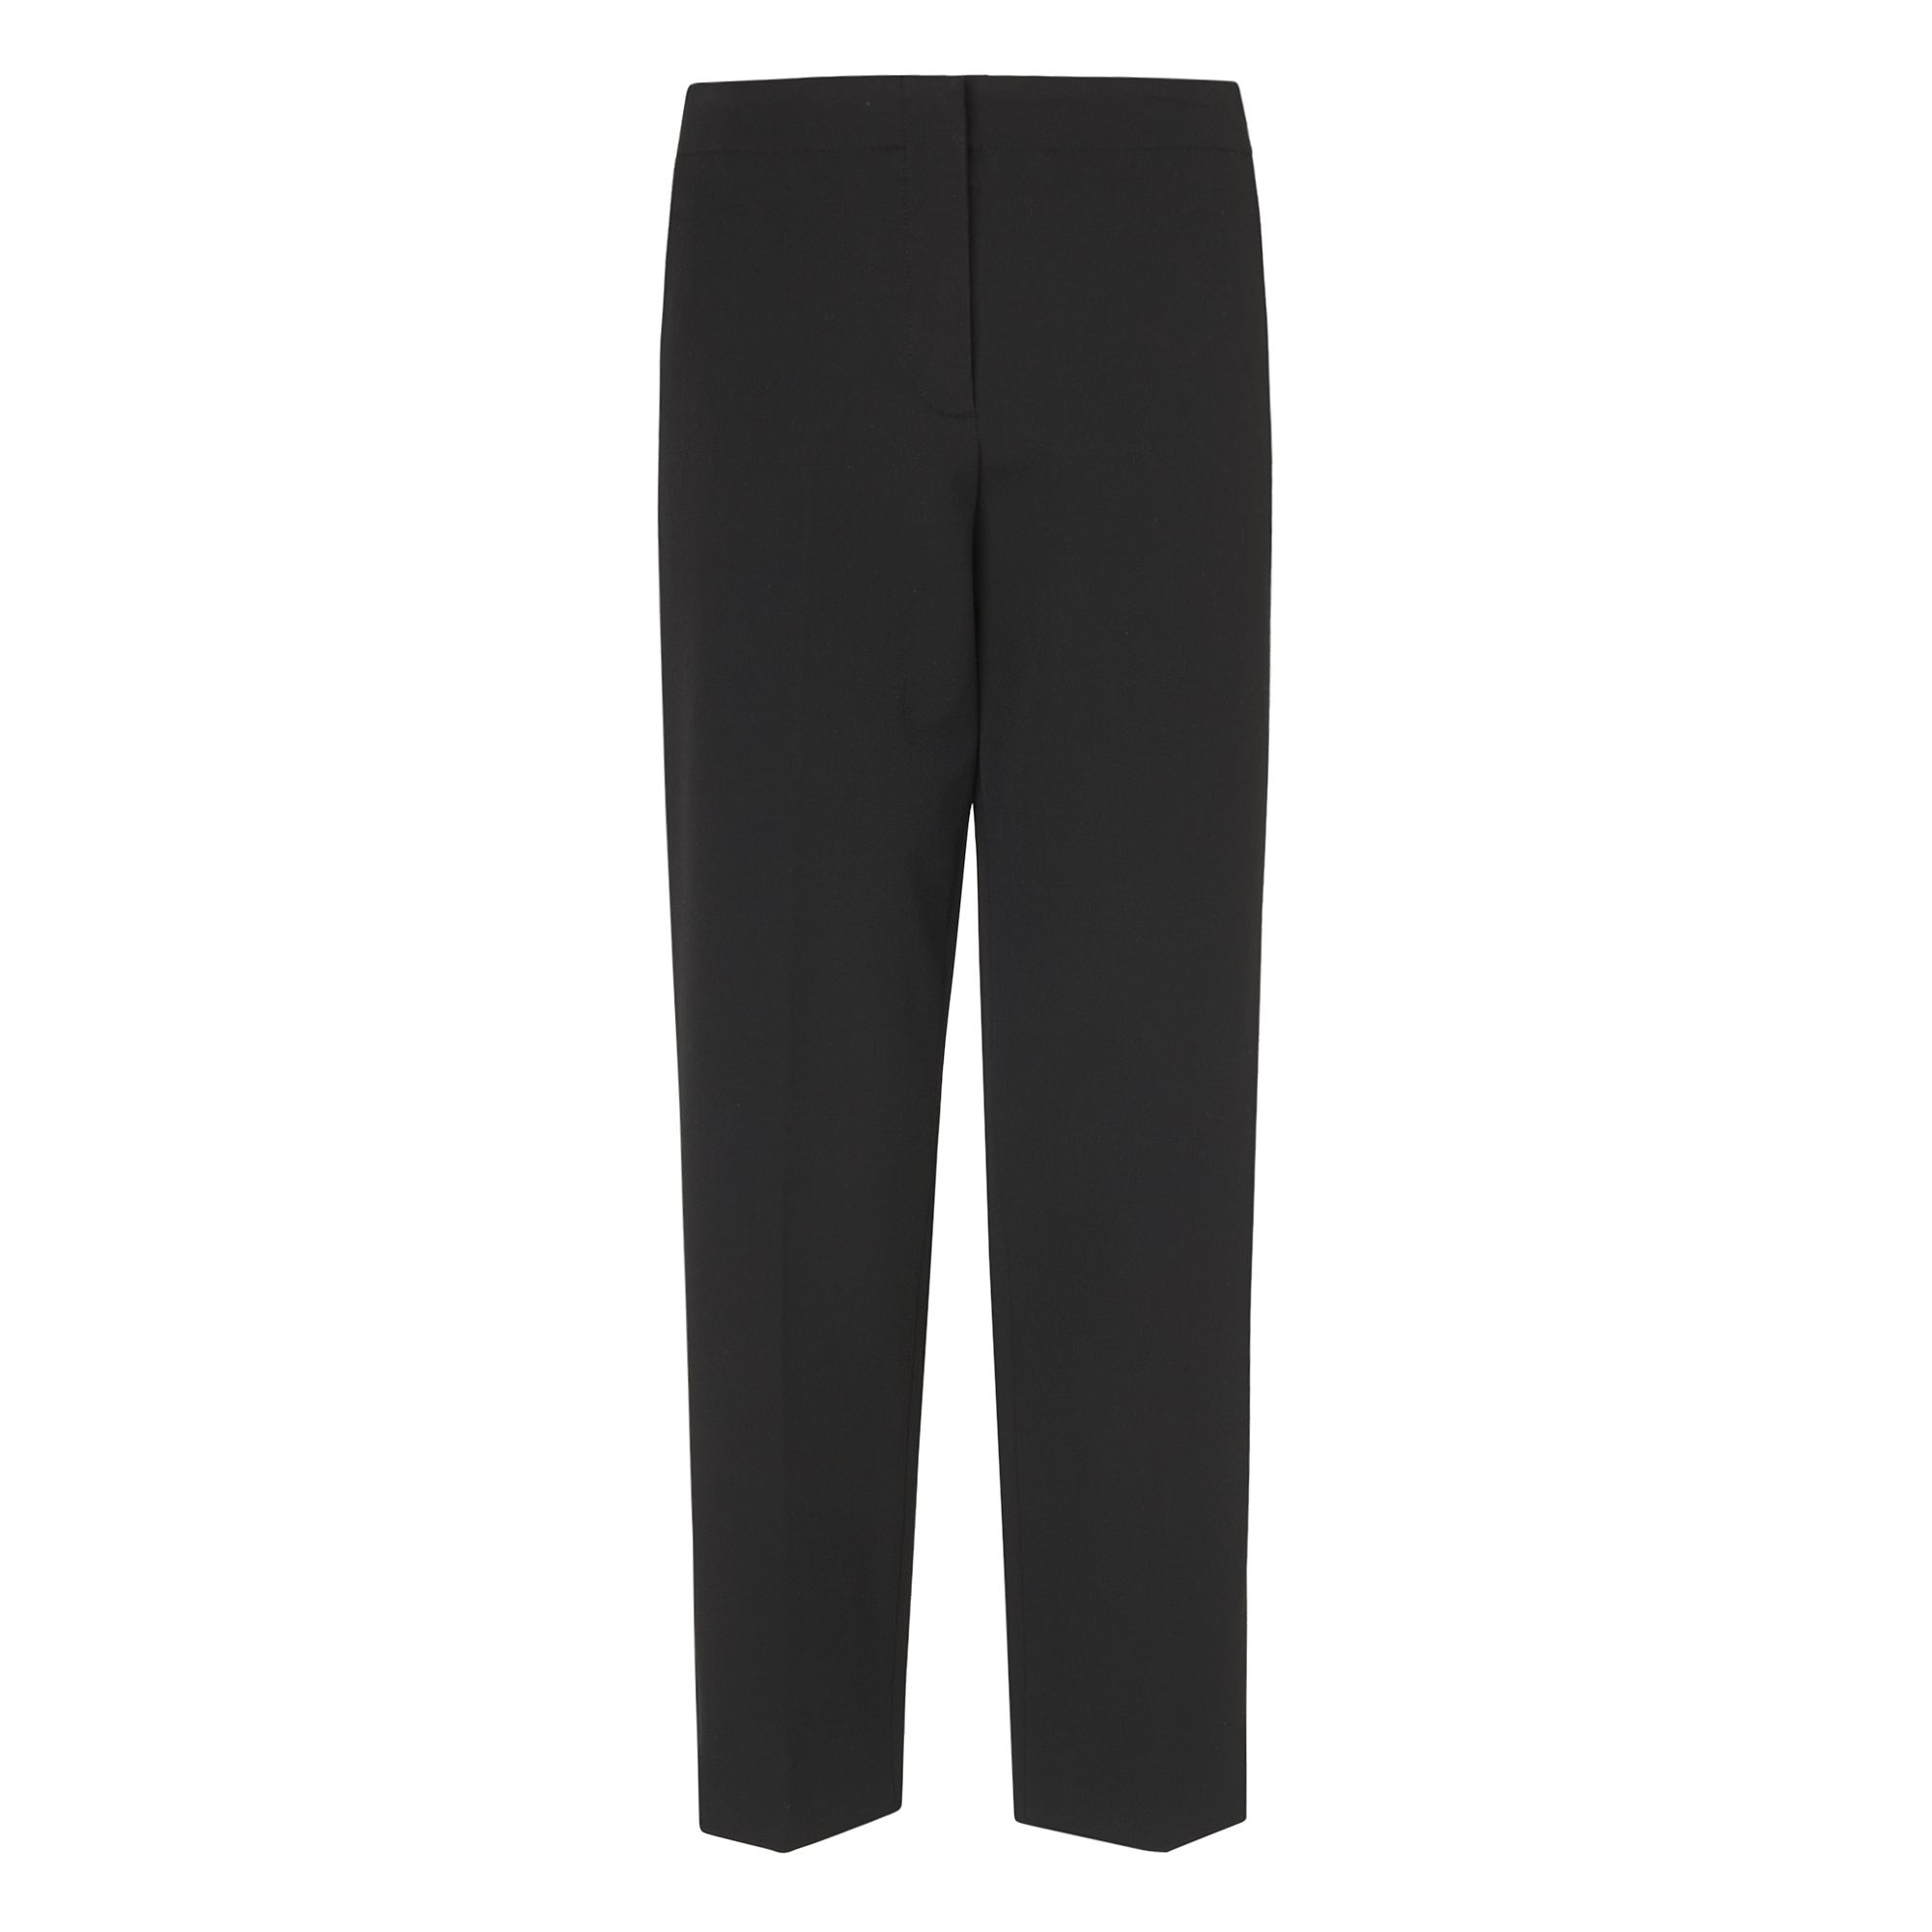 L.K. Bennett Relia Black Trousers, Black